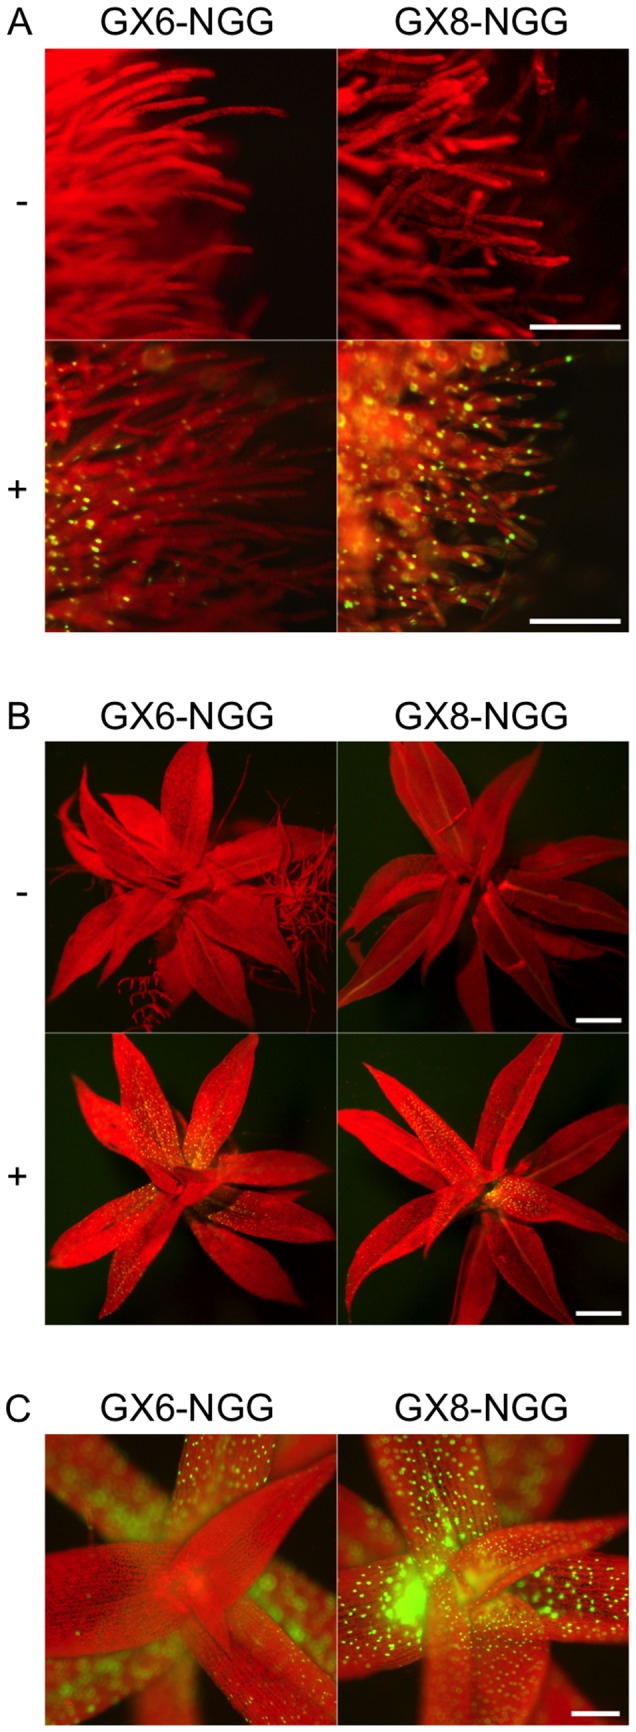 hight resolution of fluorescence images of protonemata a and gametophores b of gx6 ngg